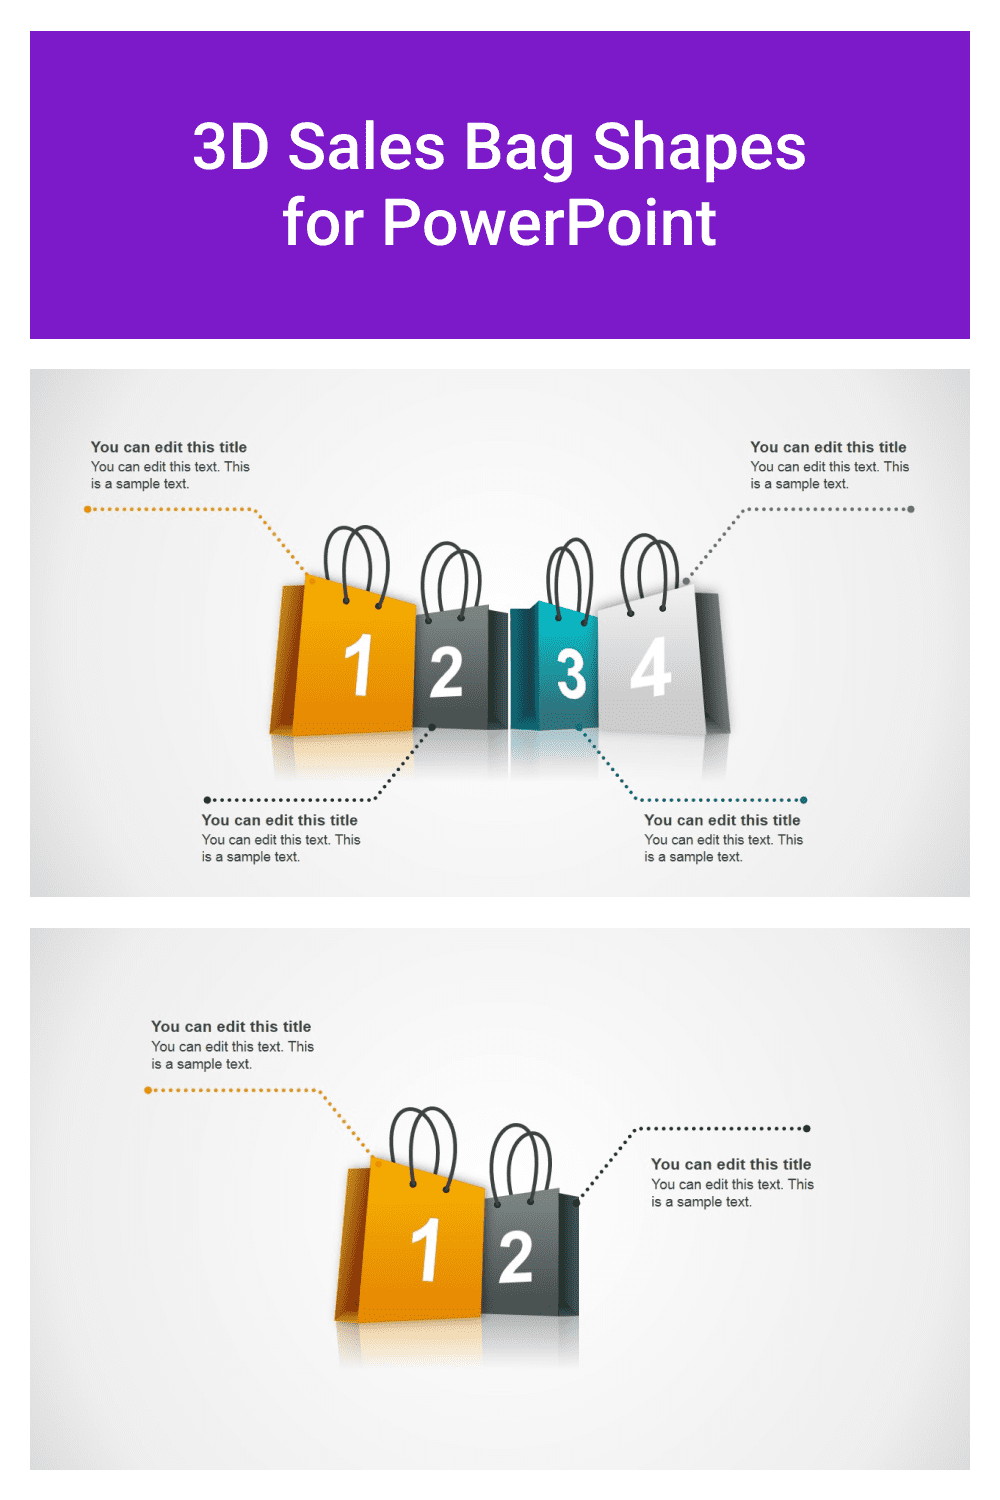 3D Sales Bag Shapes for PowerPoint.